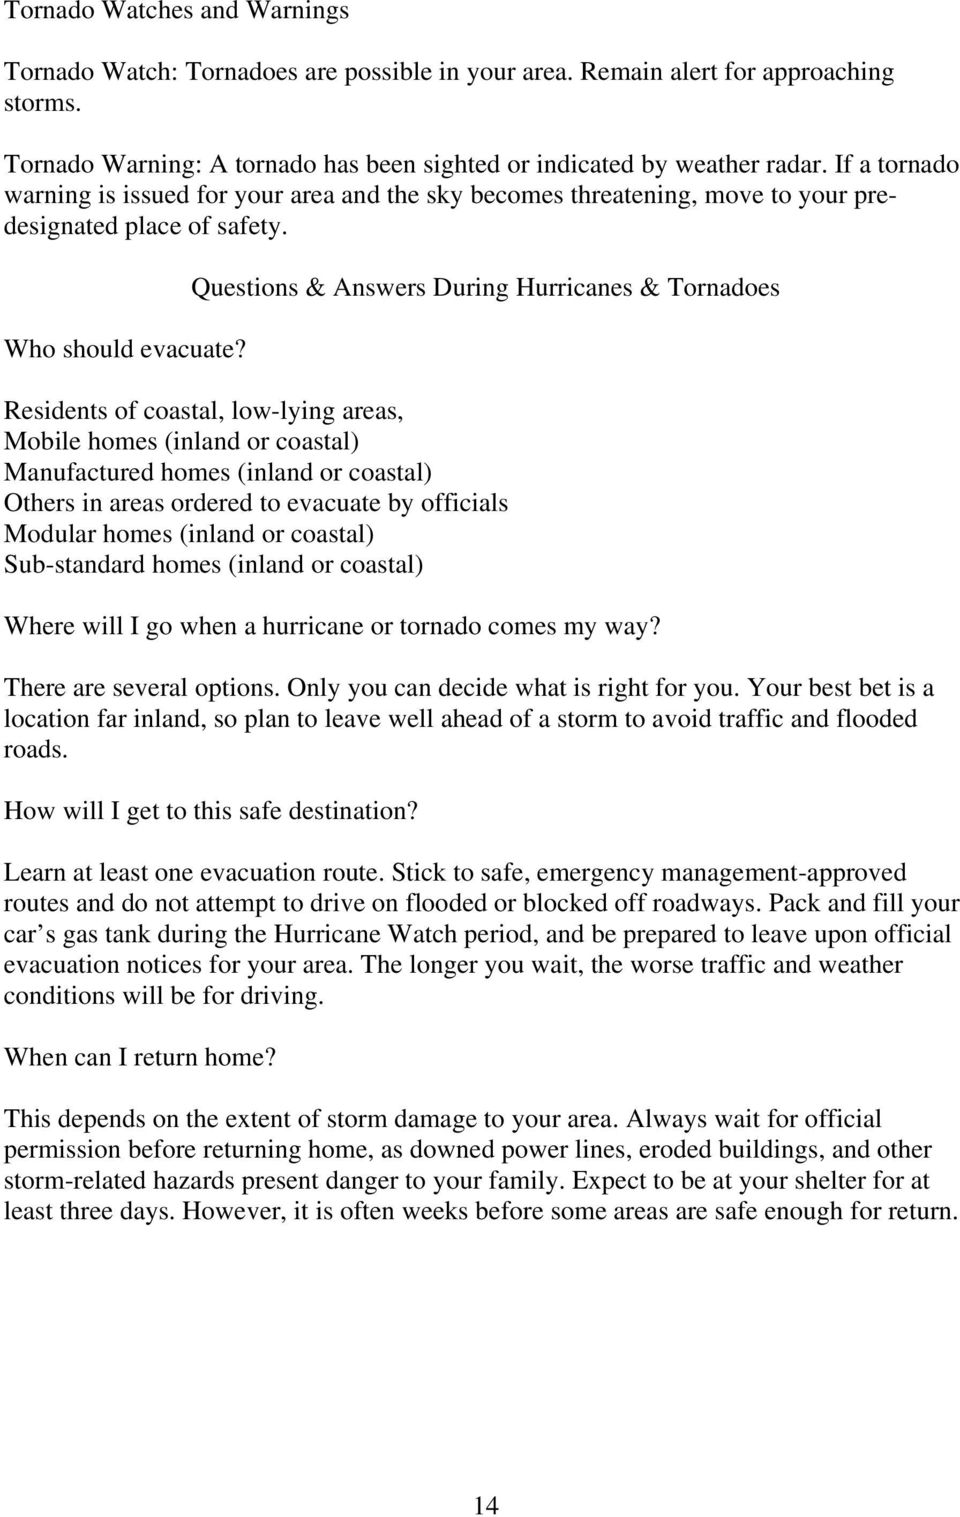 Questions & Answers During Hurricanes & Tornadoes Residents of coastal, low-lying areas, Mobile homes (inland or coastal) Manufactured homes (inland or coastal) Others in areas ordered to evacuate by